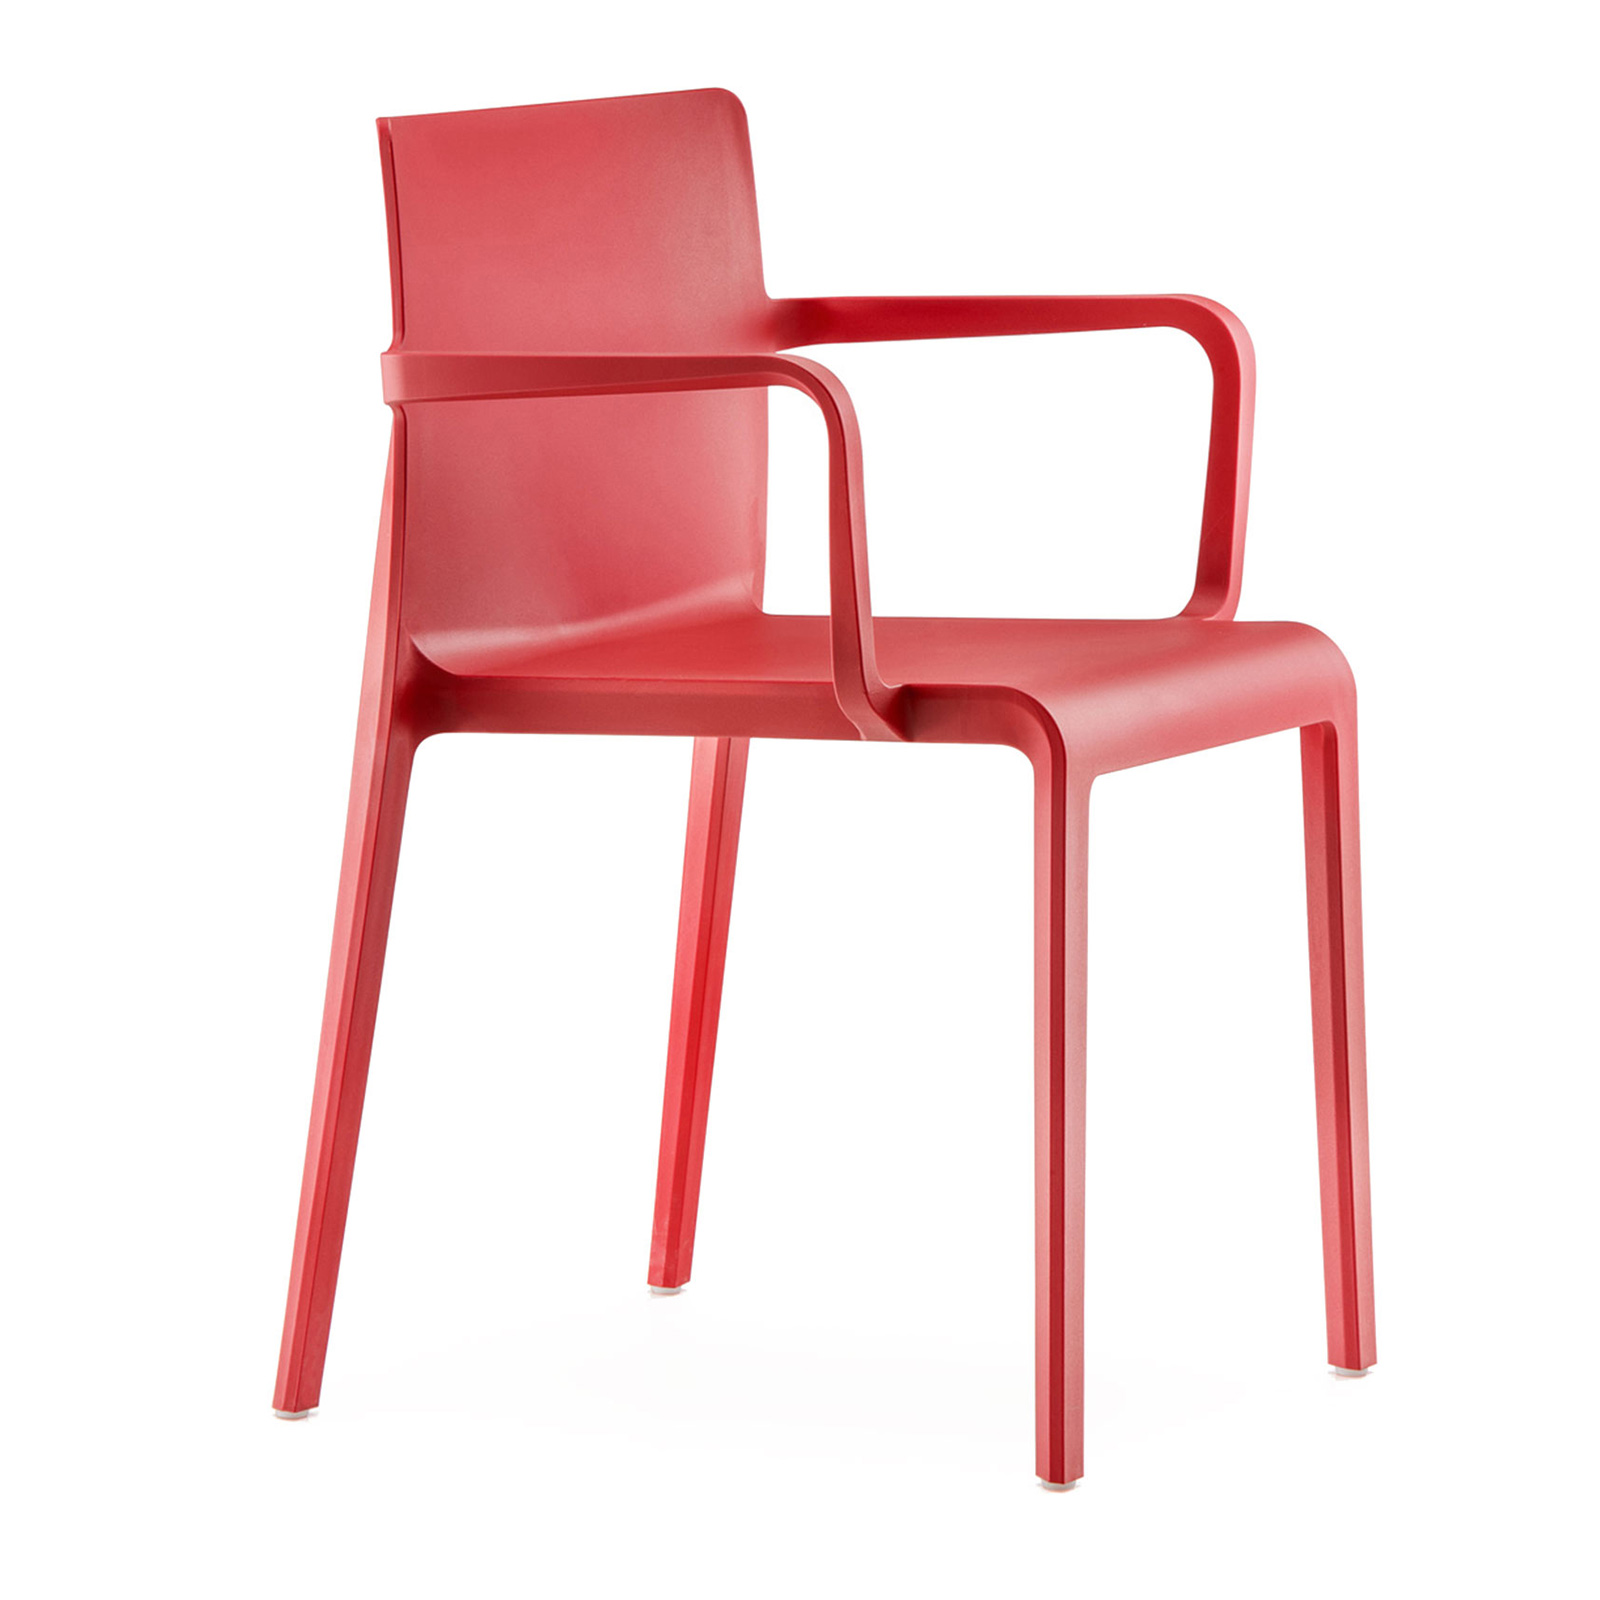 Florida Seating VOLT-A / RED chair, armchair, stacking, outdoor